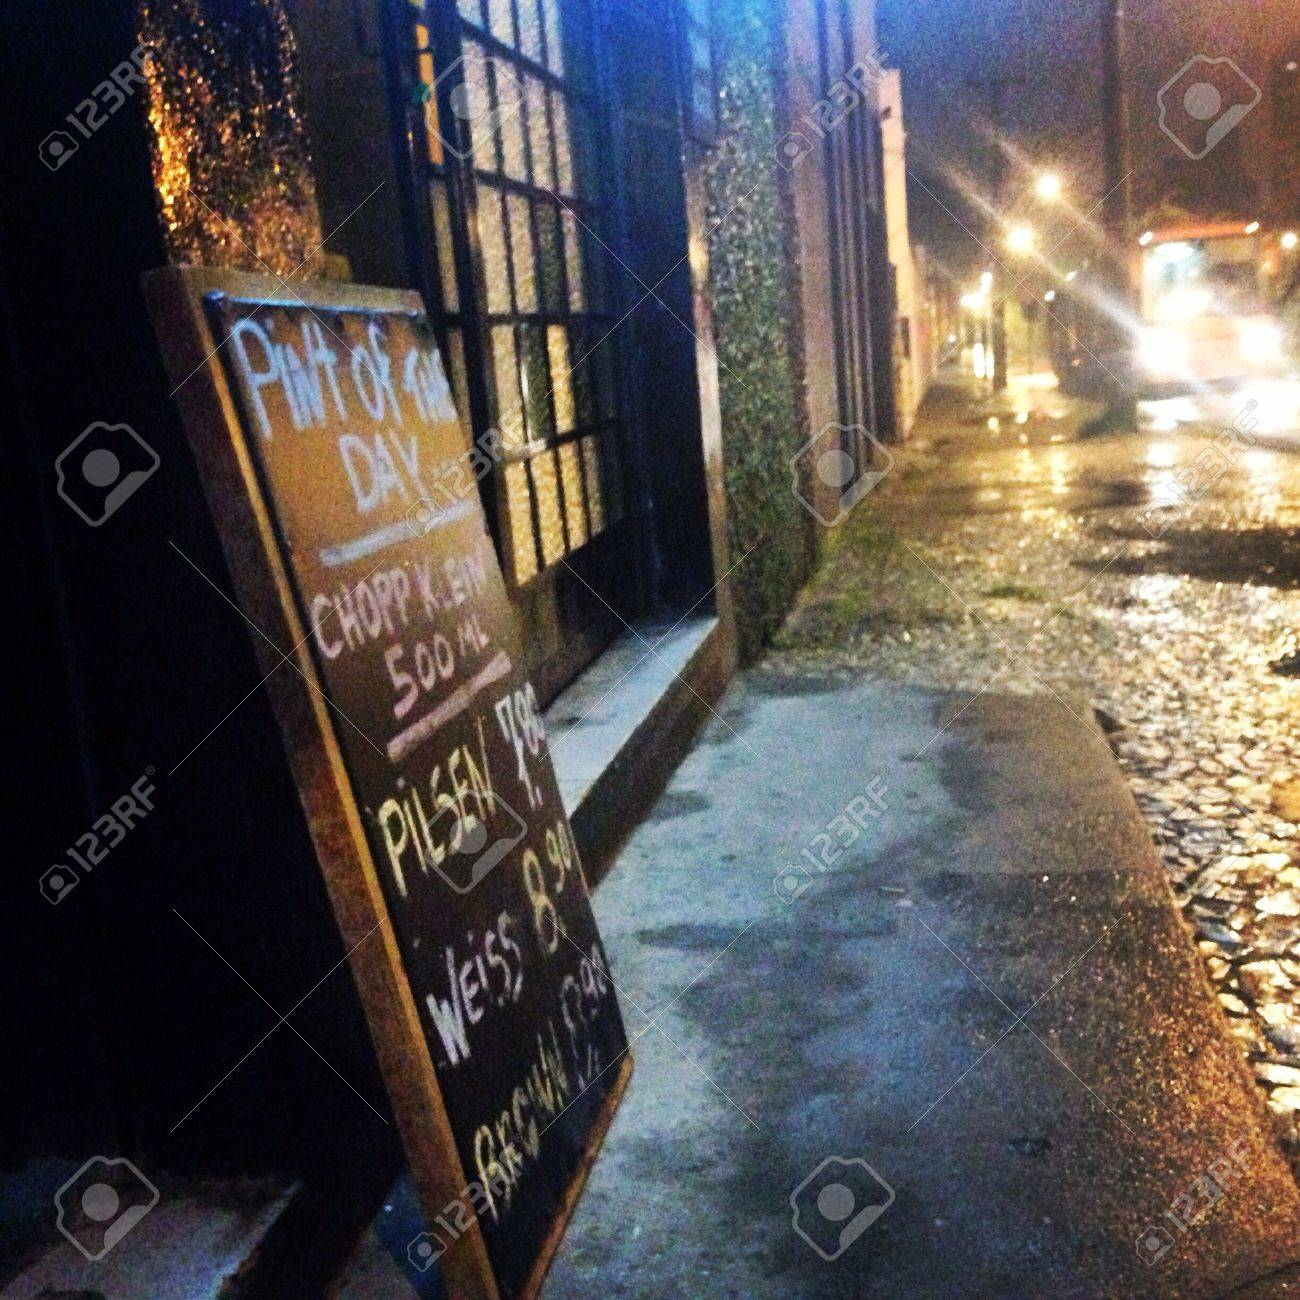 Rain Outside Of A Pub Stock Photo, Picture And Royalty Free Image. Image  27767447.